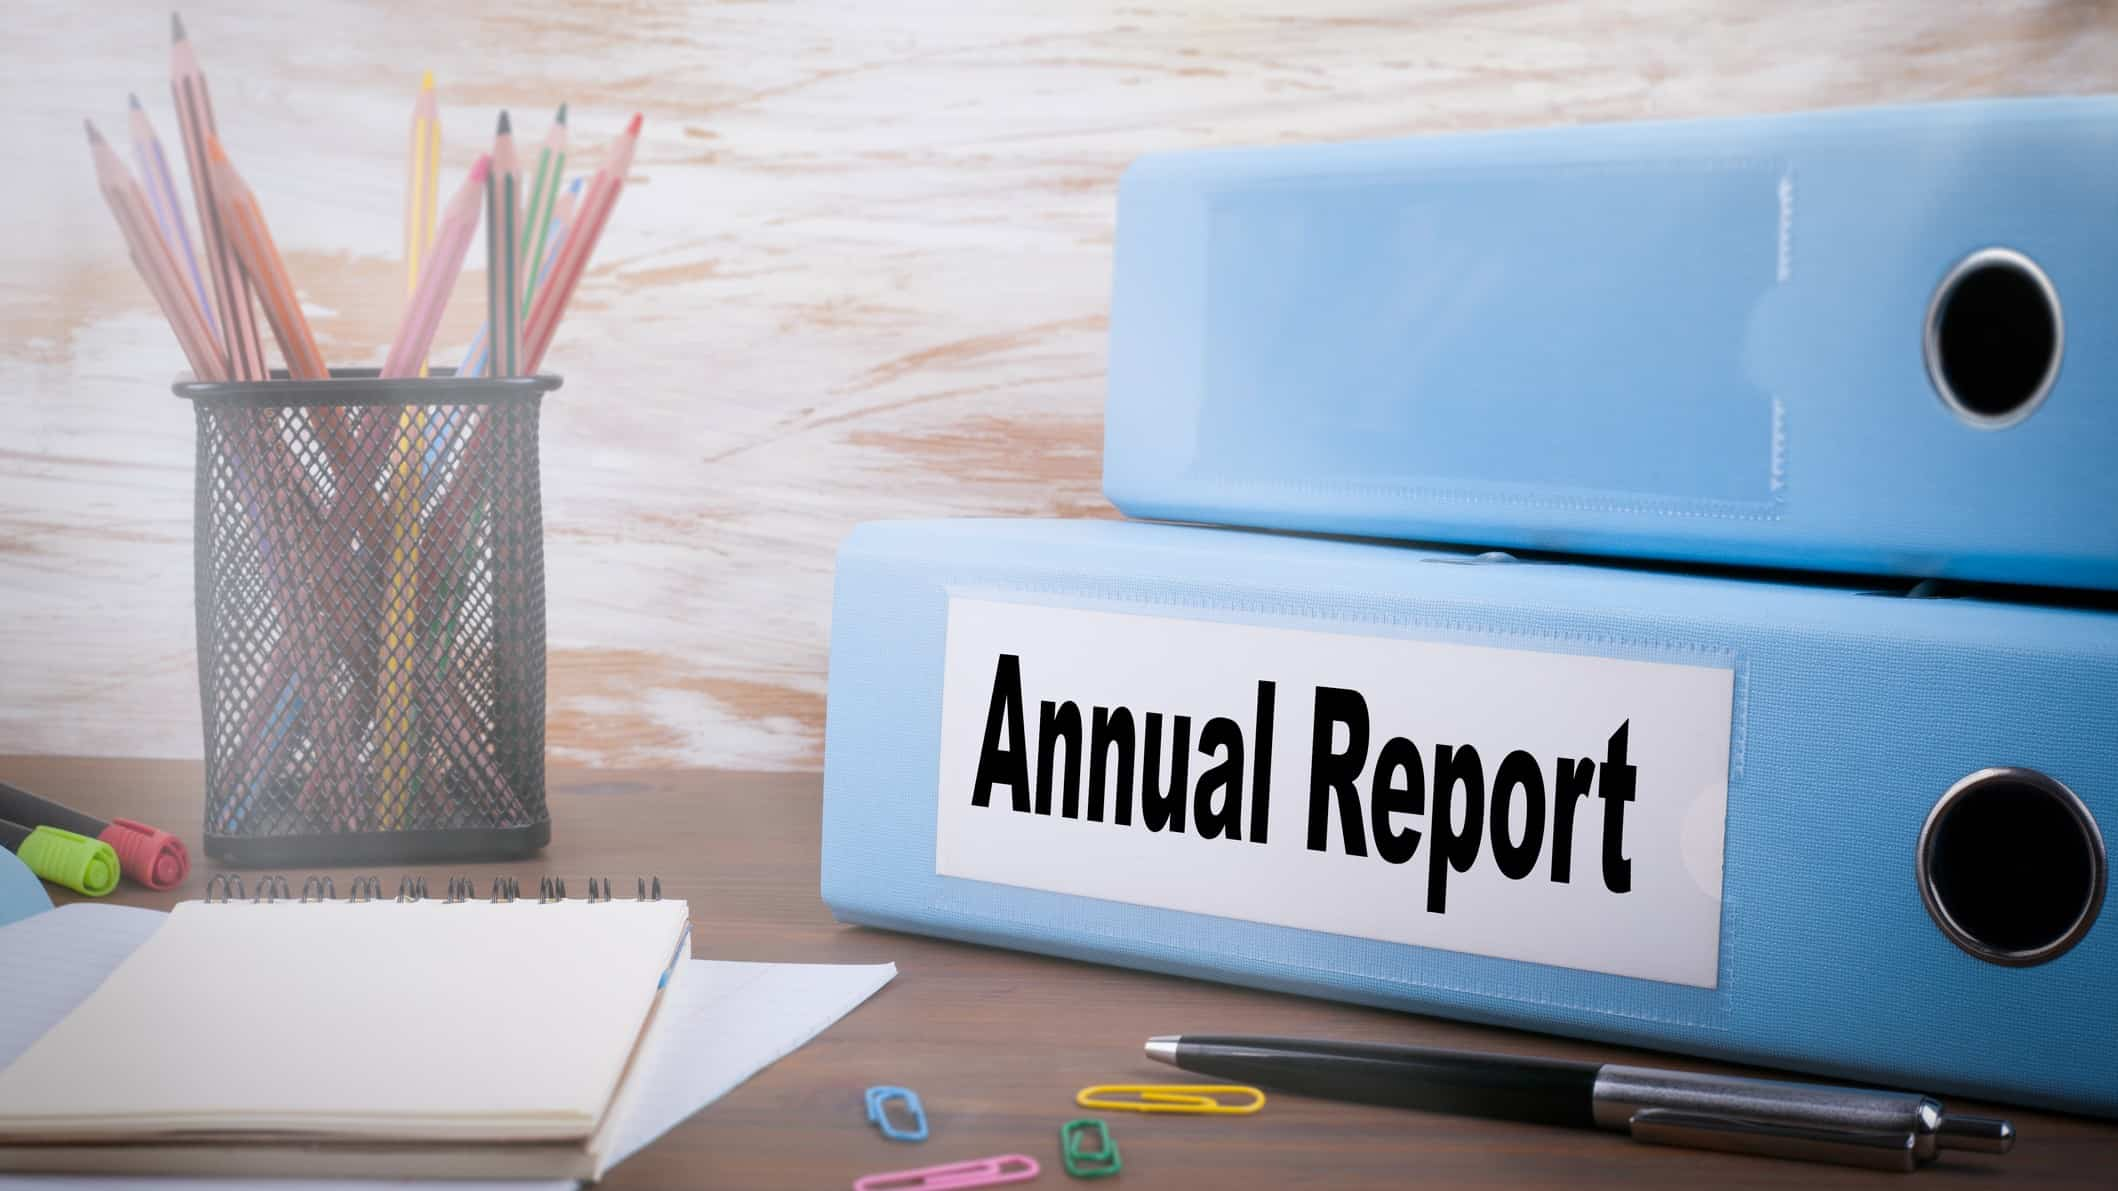 pencils, pen, note pad, paper clips and folder entitled annual report signifying asx reporting season